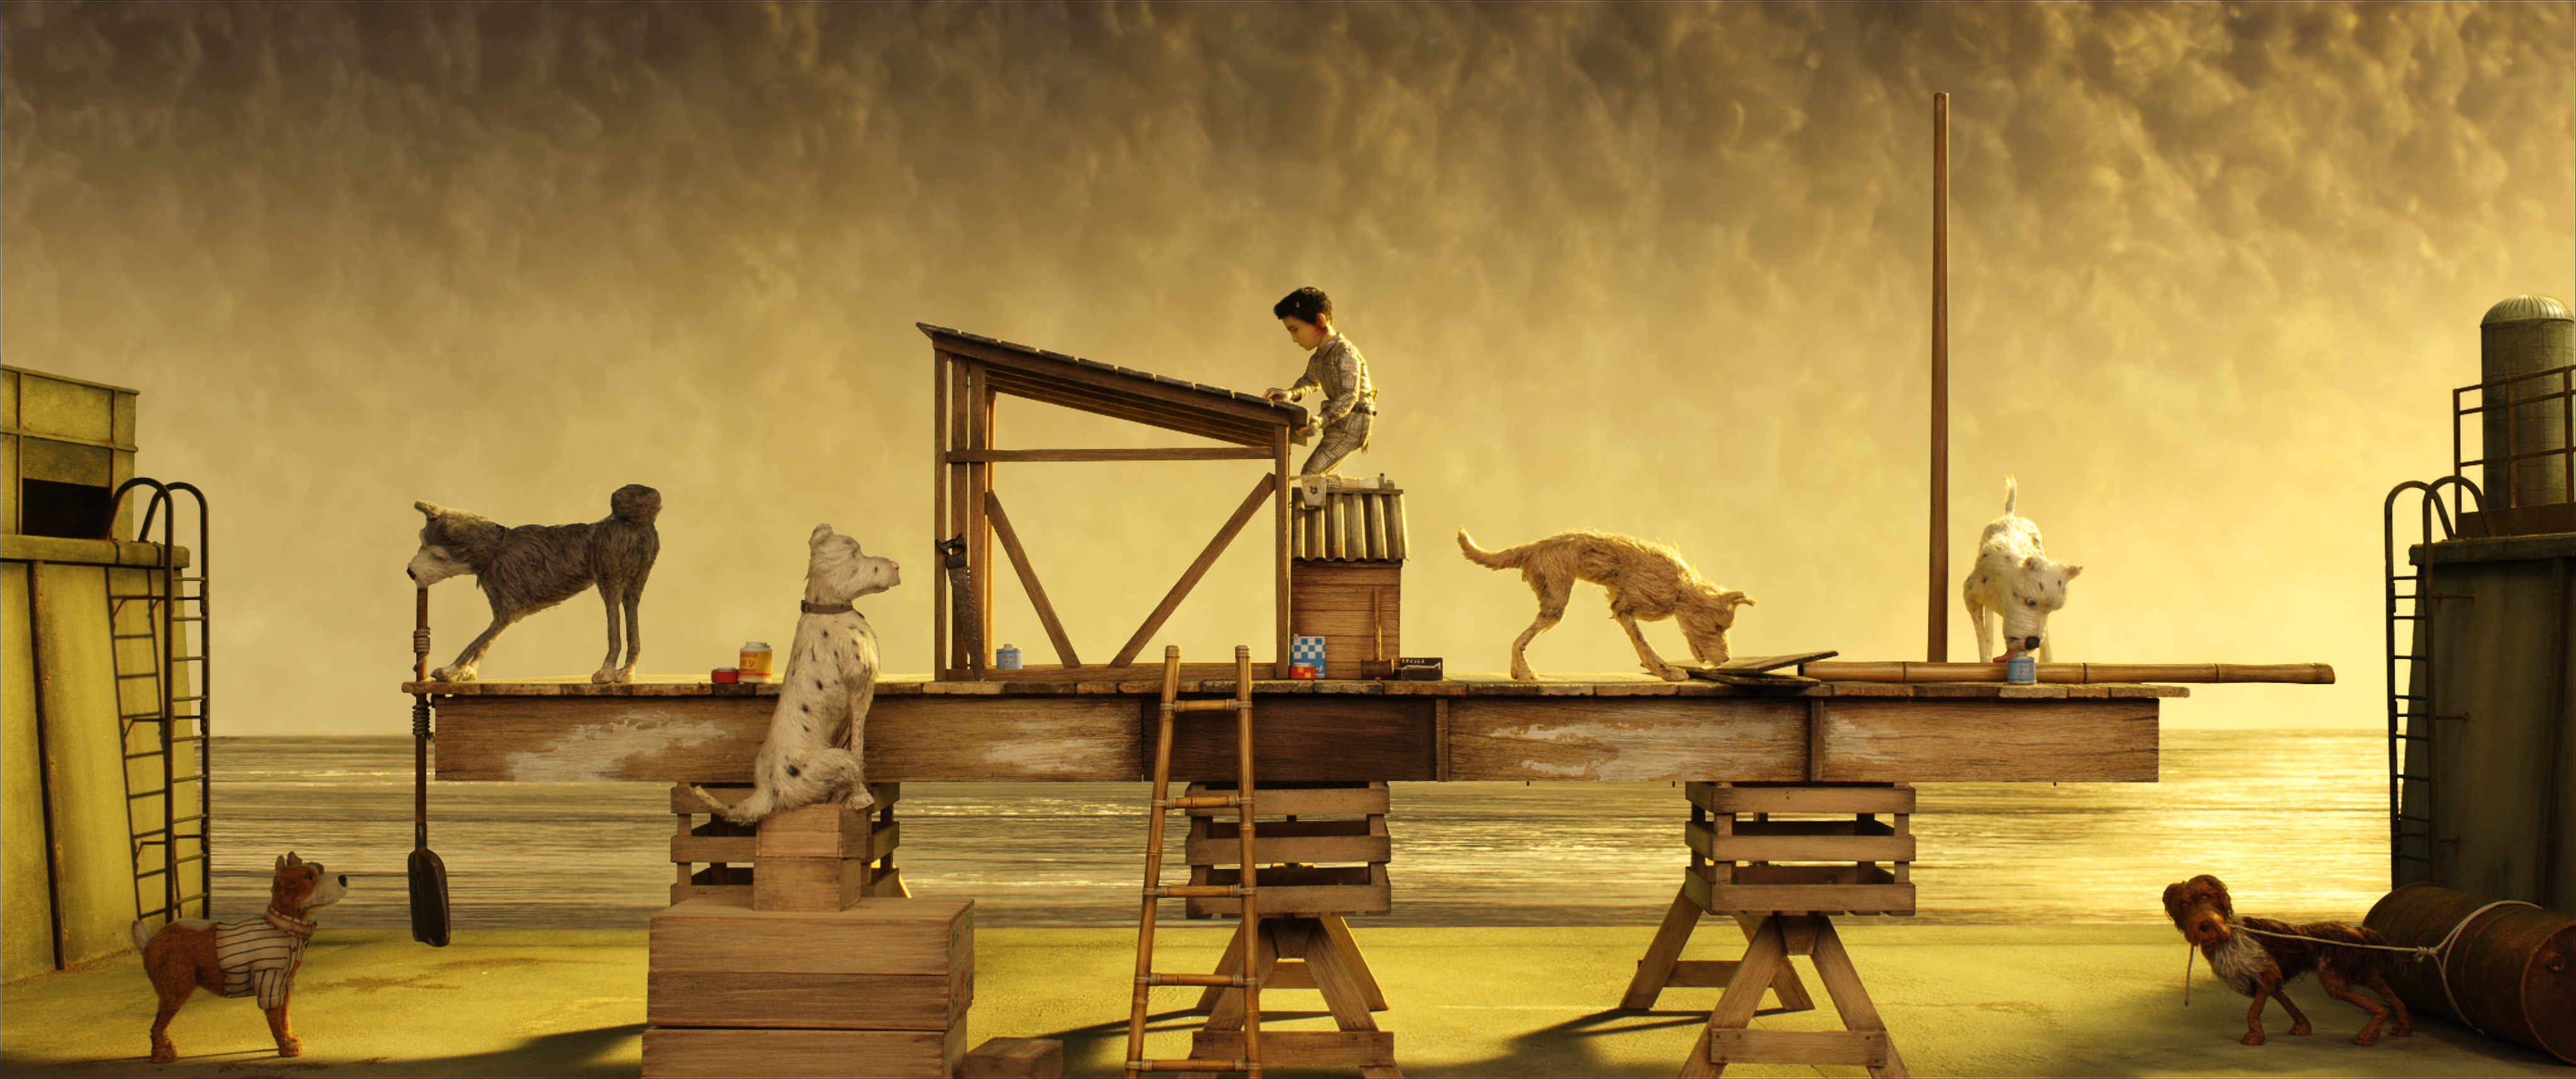 Wes Anderson S Isle Of Dogs Interview With The Visual Team Time